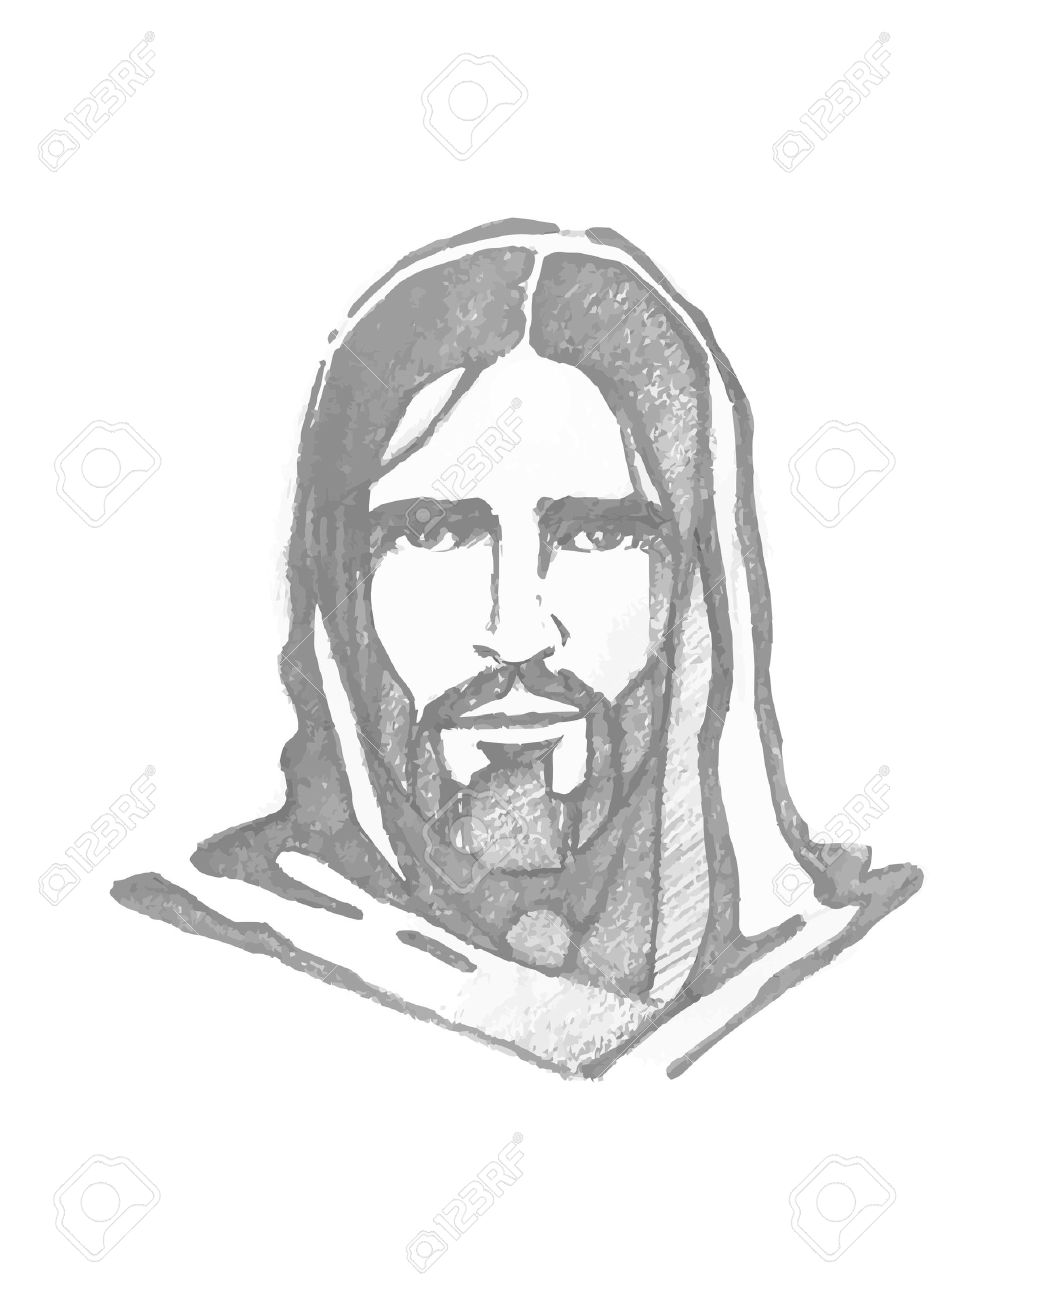 1040x1300 Jesus Face Stock Photos. Royalty Free Business Images